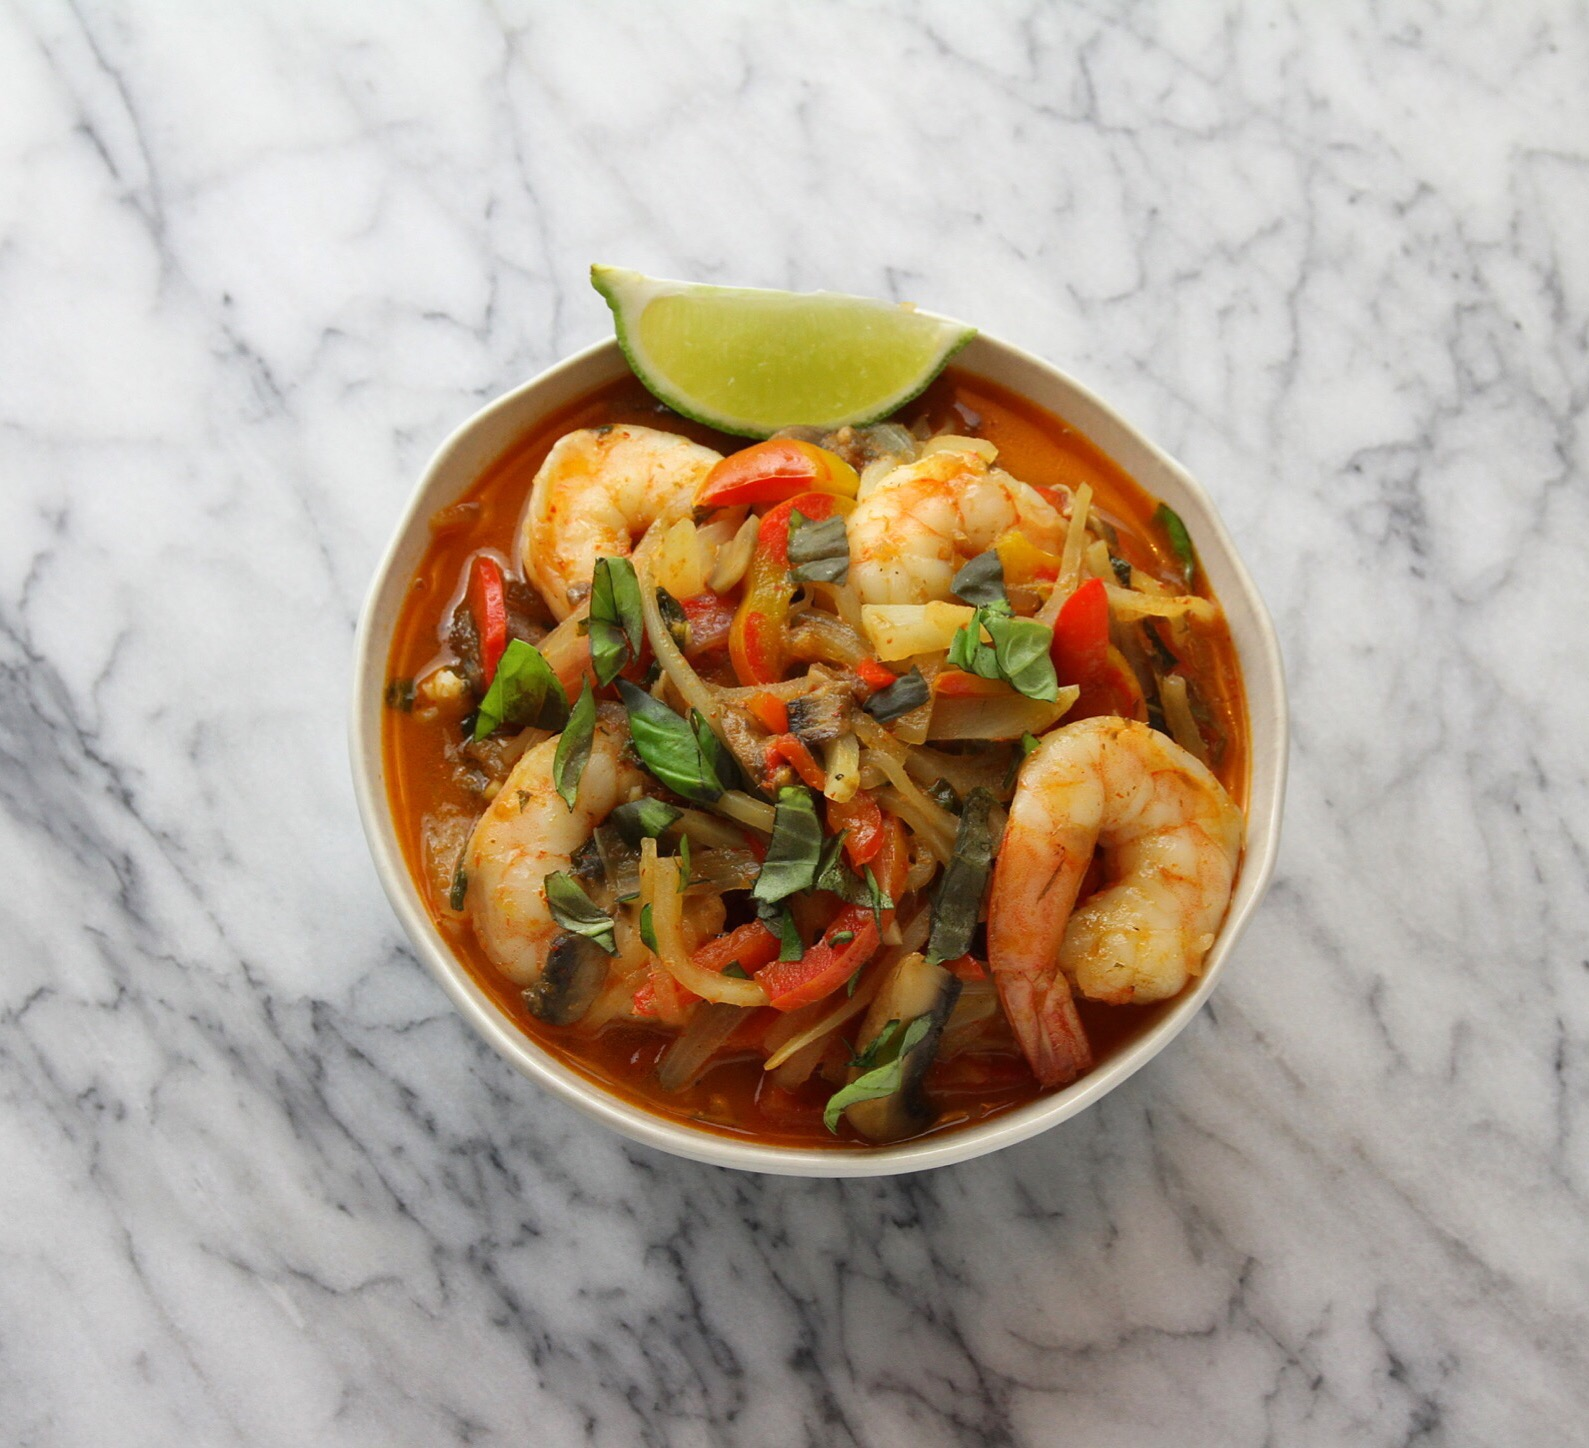 We made the favorites when we felt like cooking and that included red coconut curry shrimp. So scrumptious and perfect for this absurdly cold week.